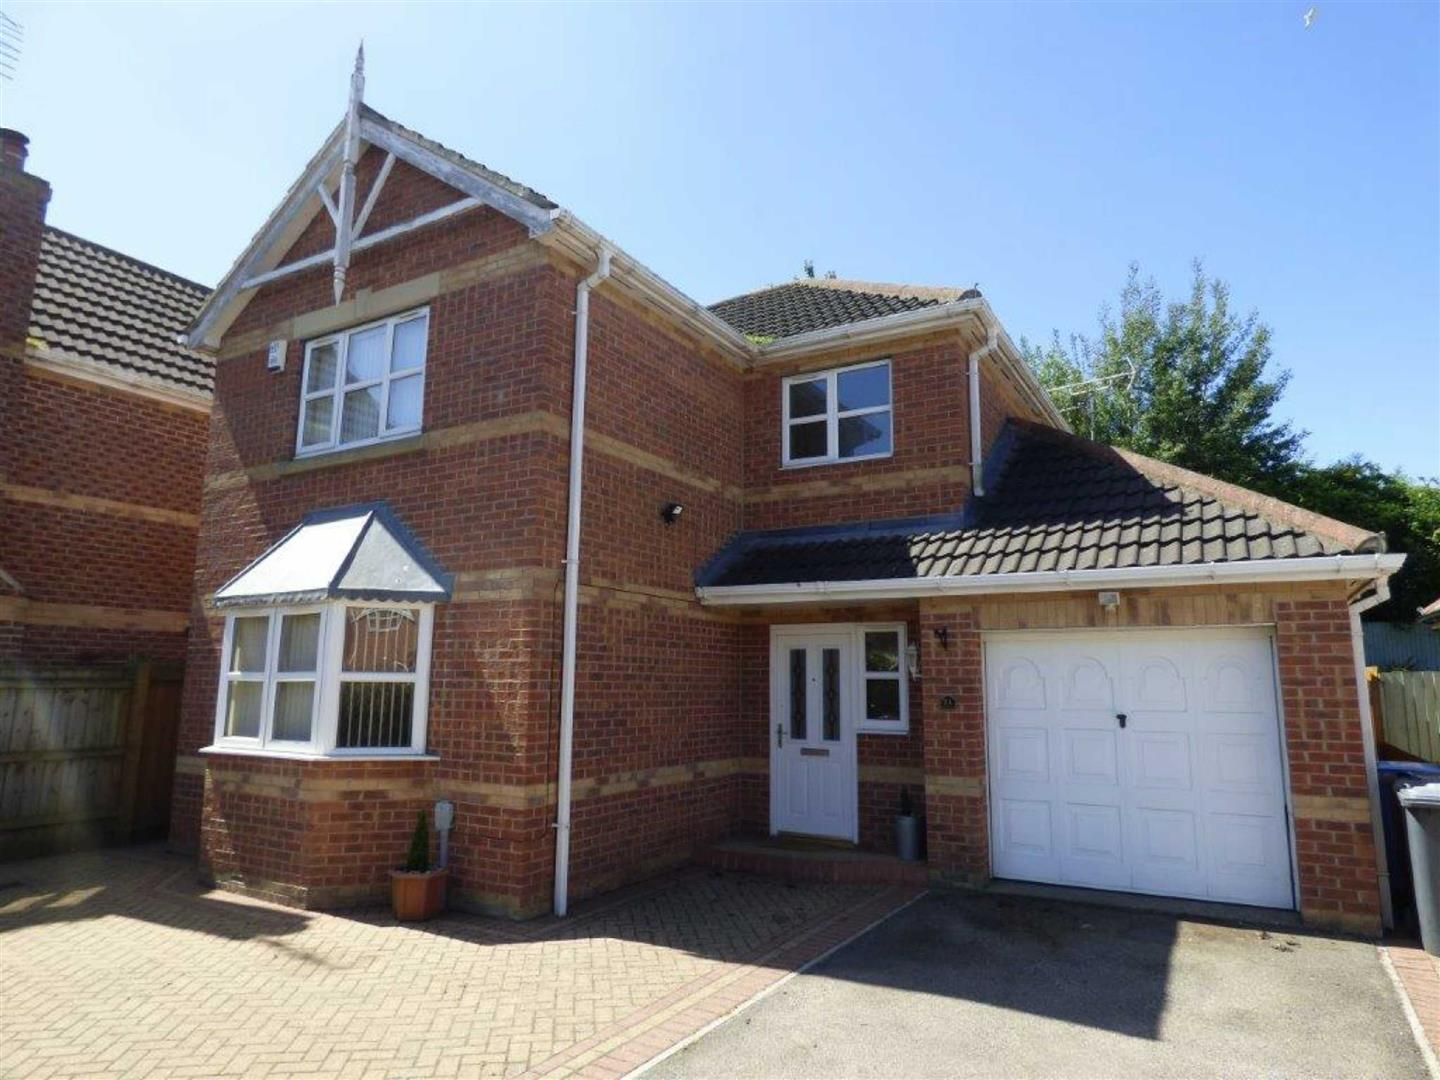 31 31 Knightley Way Kingswood Hull East Yorkshire, 31, HU7 3JR